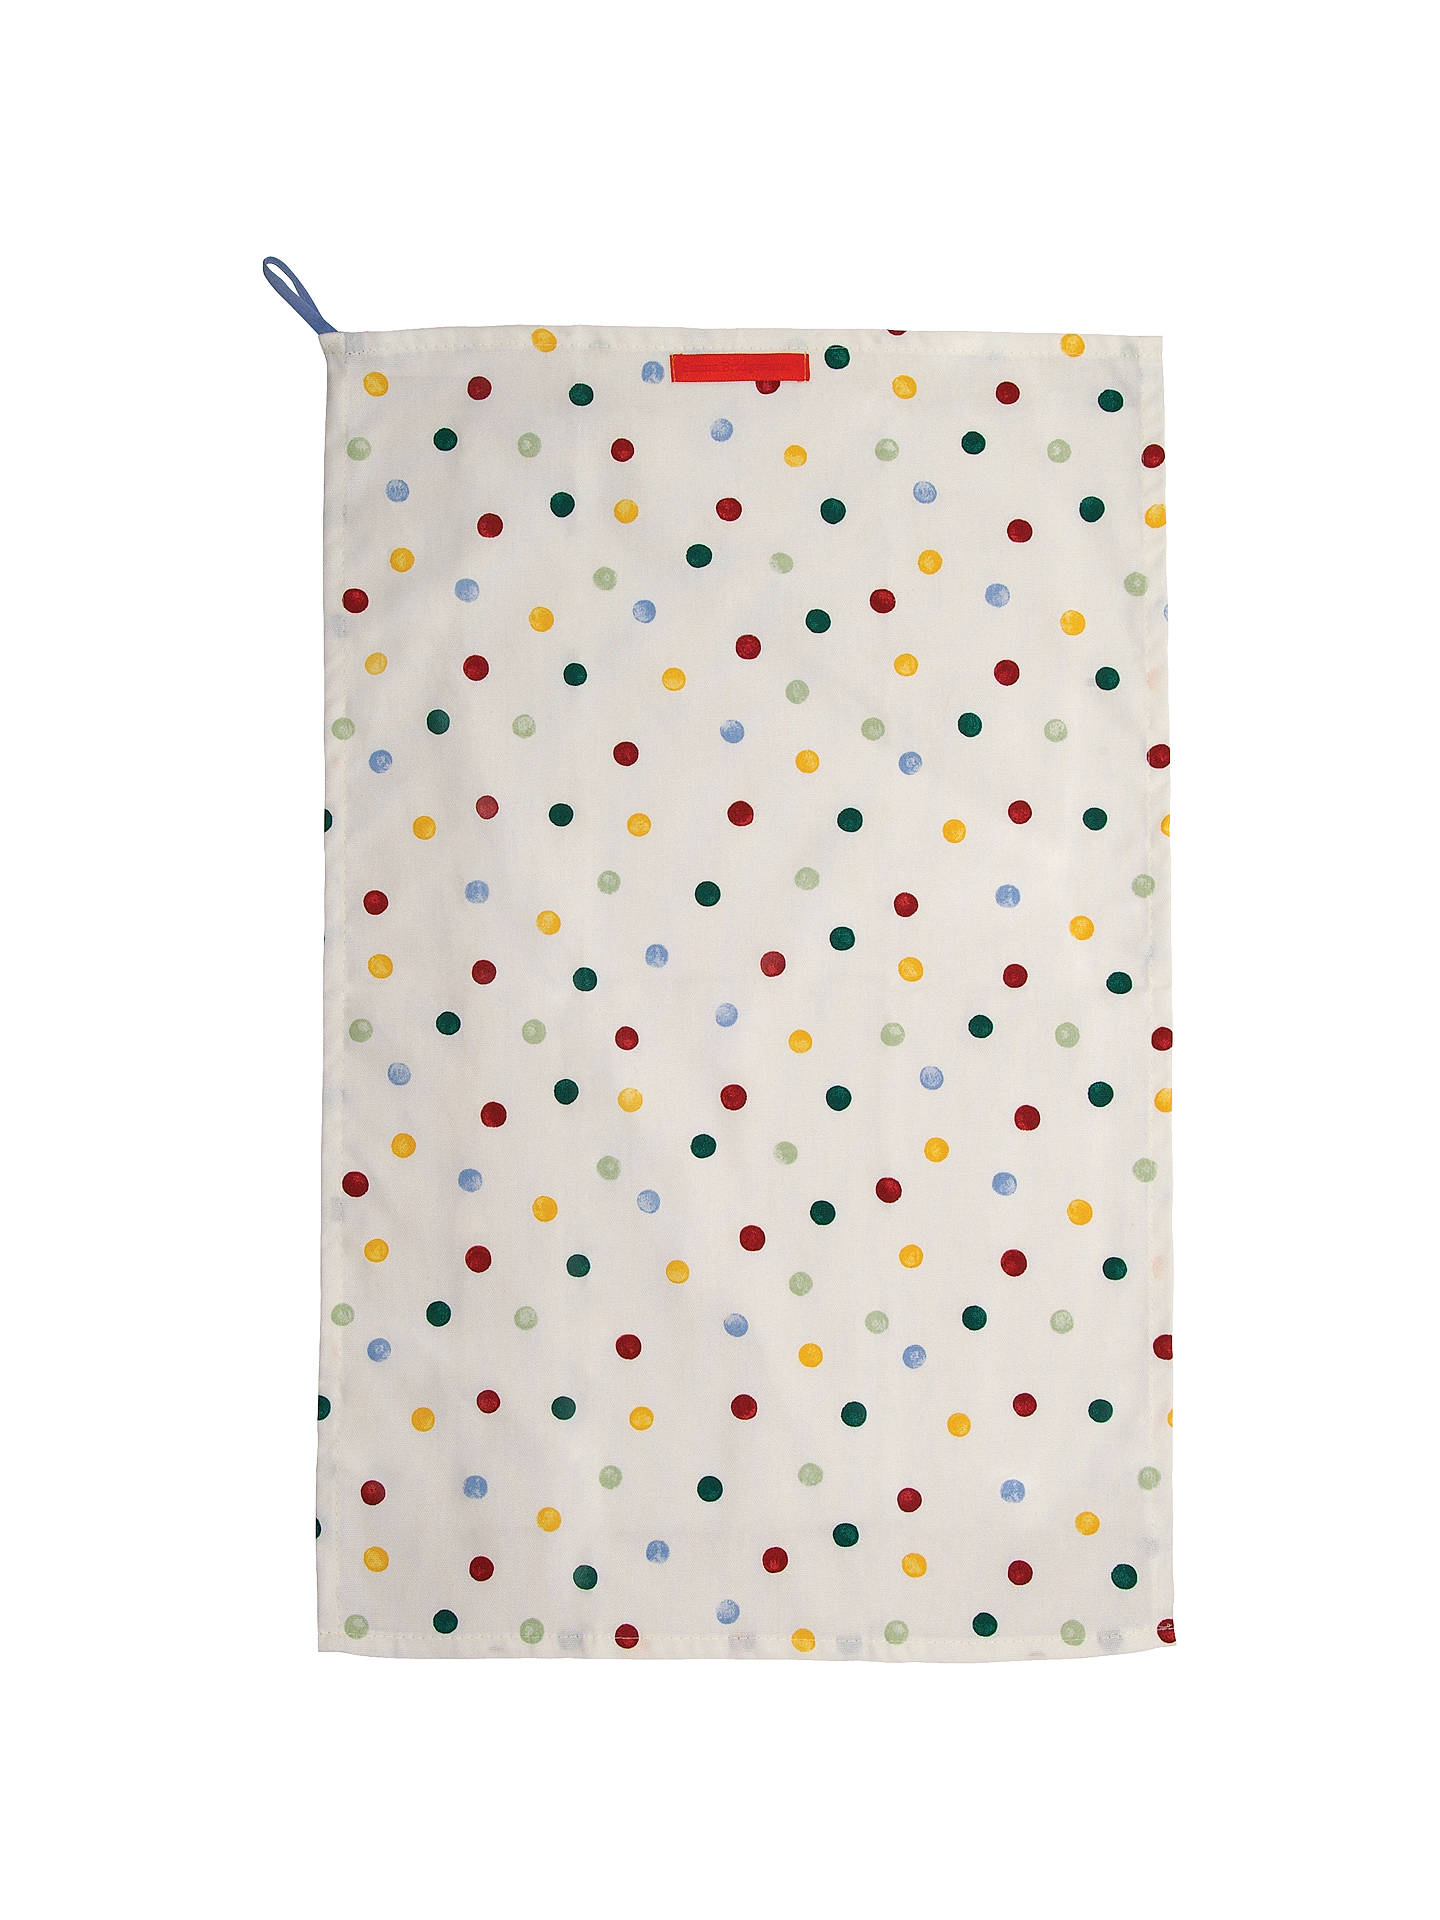 Emma Bridgewater Polka Dot Tea Towel At John Lewis Partners